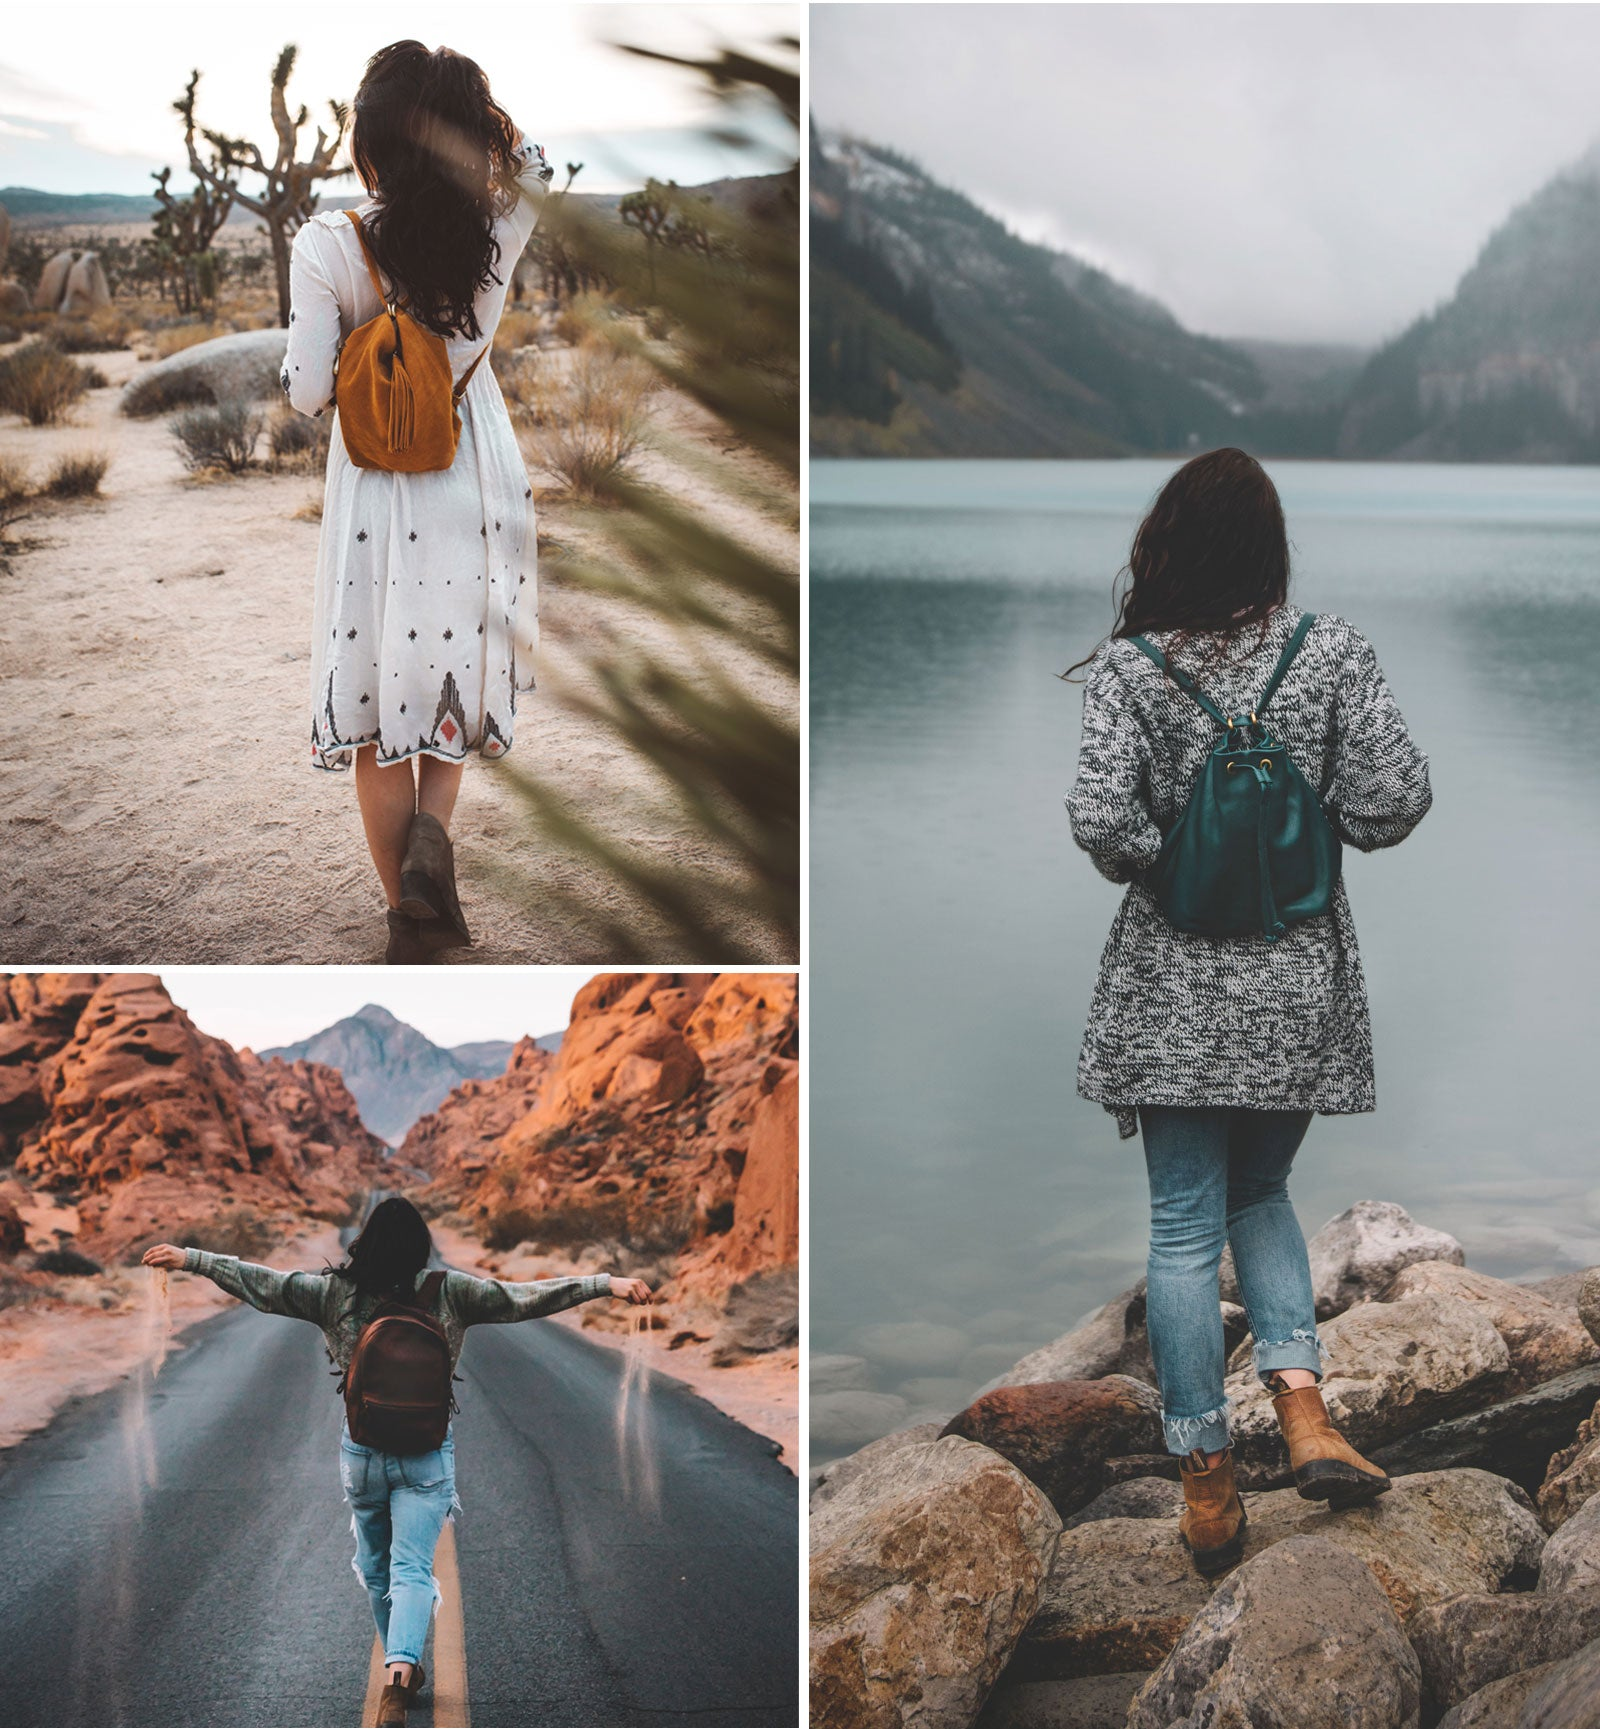 Leather backpack styles perfect to travel with!